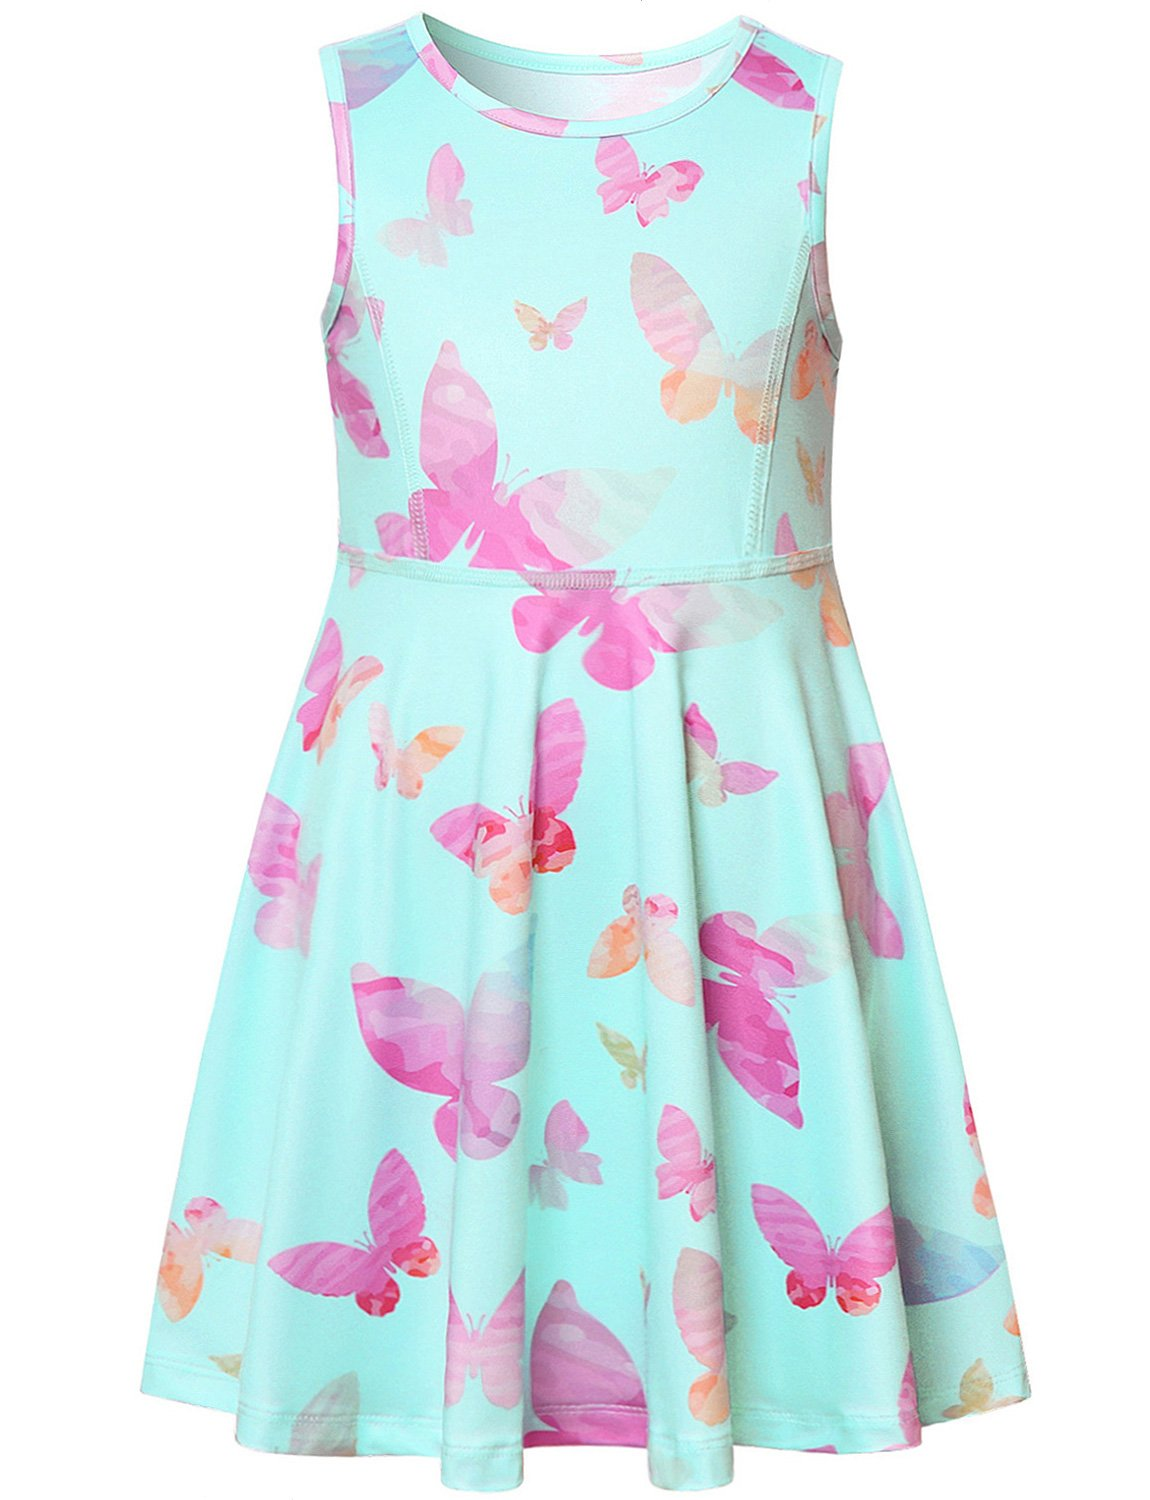 e1f9a7d1e97 Jxstar Girls Summer Dress Sleeveless Printing Casual Party 3-13Years  product image